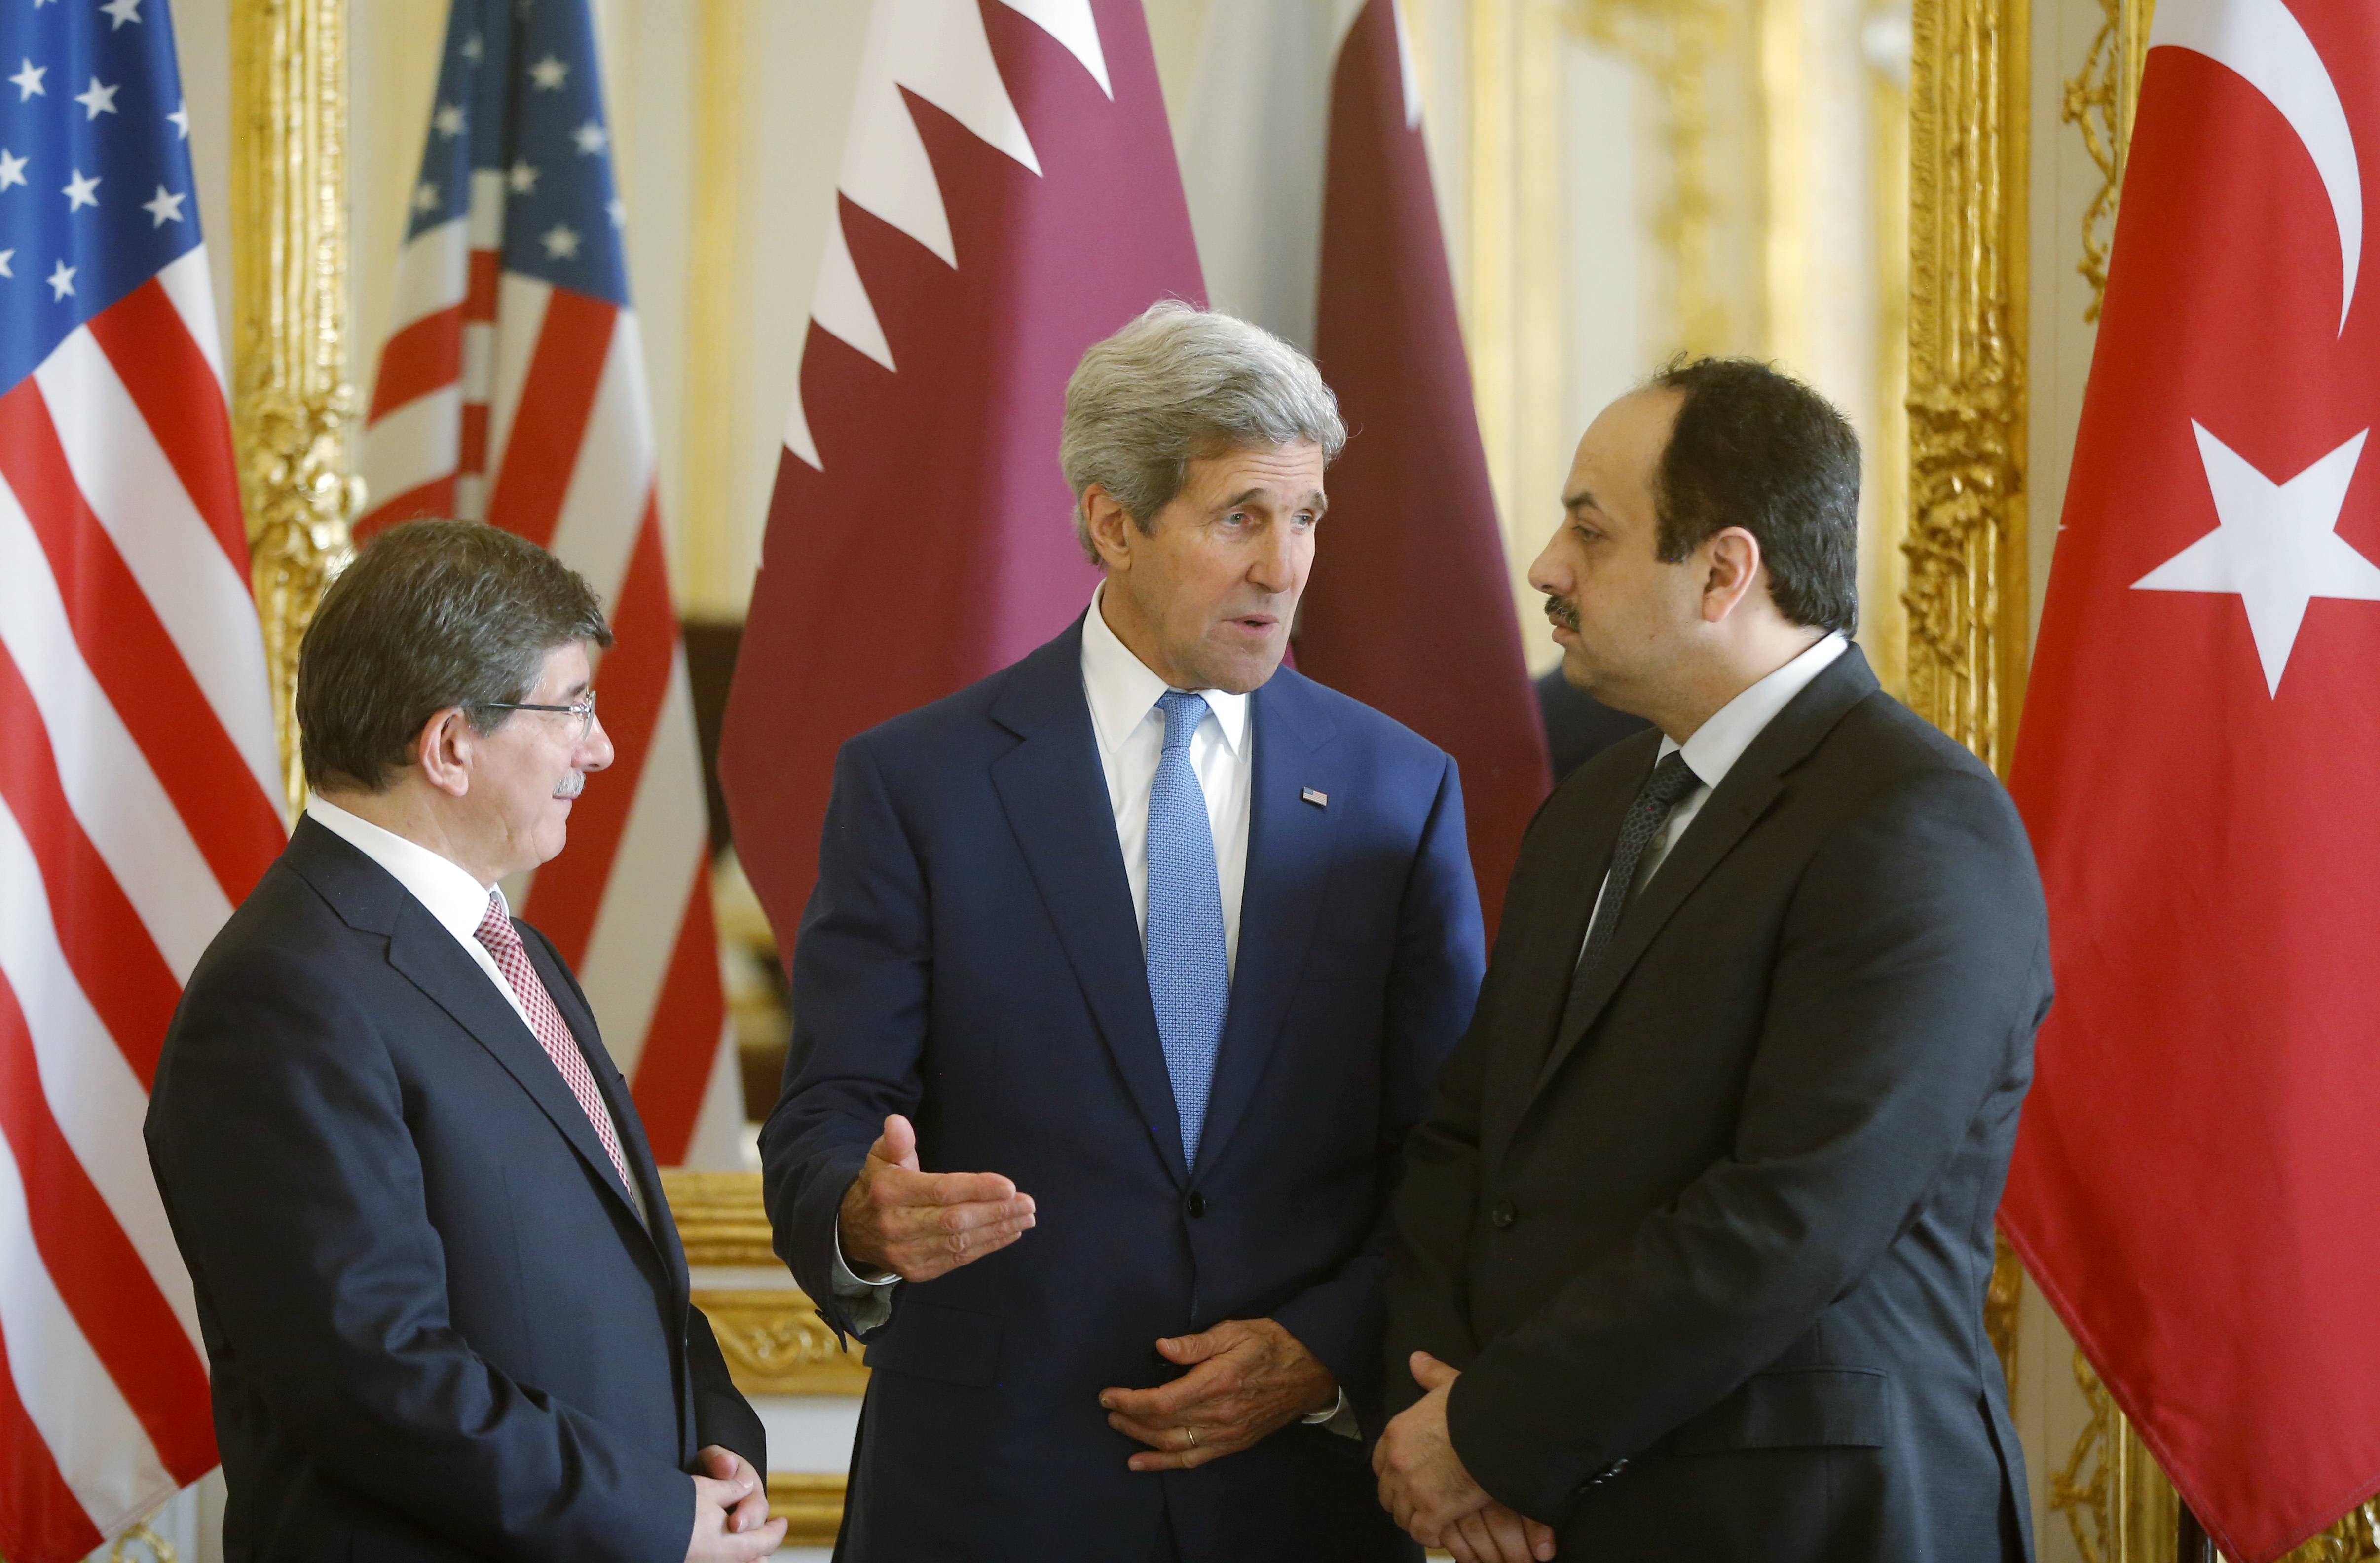 U.S. Secretary of State John Kerry, center, speaks with Qatari Foreign Minister Khaled al-Attiyah, right, and Turkish Foreign Minister Ahmet Davutoglu before they make statements to reporters during their meeting regarding a cease-fire between Hamas and Israel in Gaza, Saturday, July 26, at the U.S. ambassador's residence in Paris, France. With a 12-hour humanitarian cease-fire in Gaza Saturday, Kerry is continuing with efforts to reach a longer truce between Israel and Hamas.